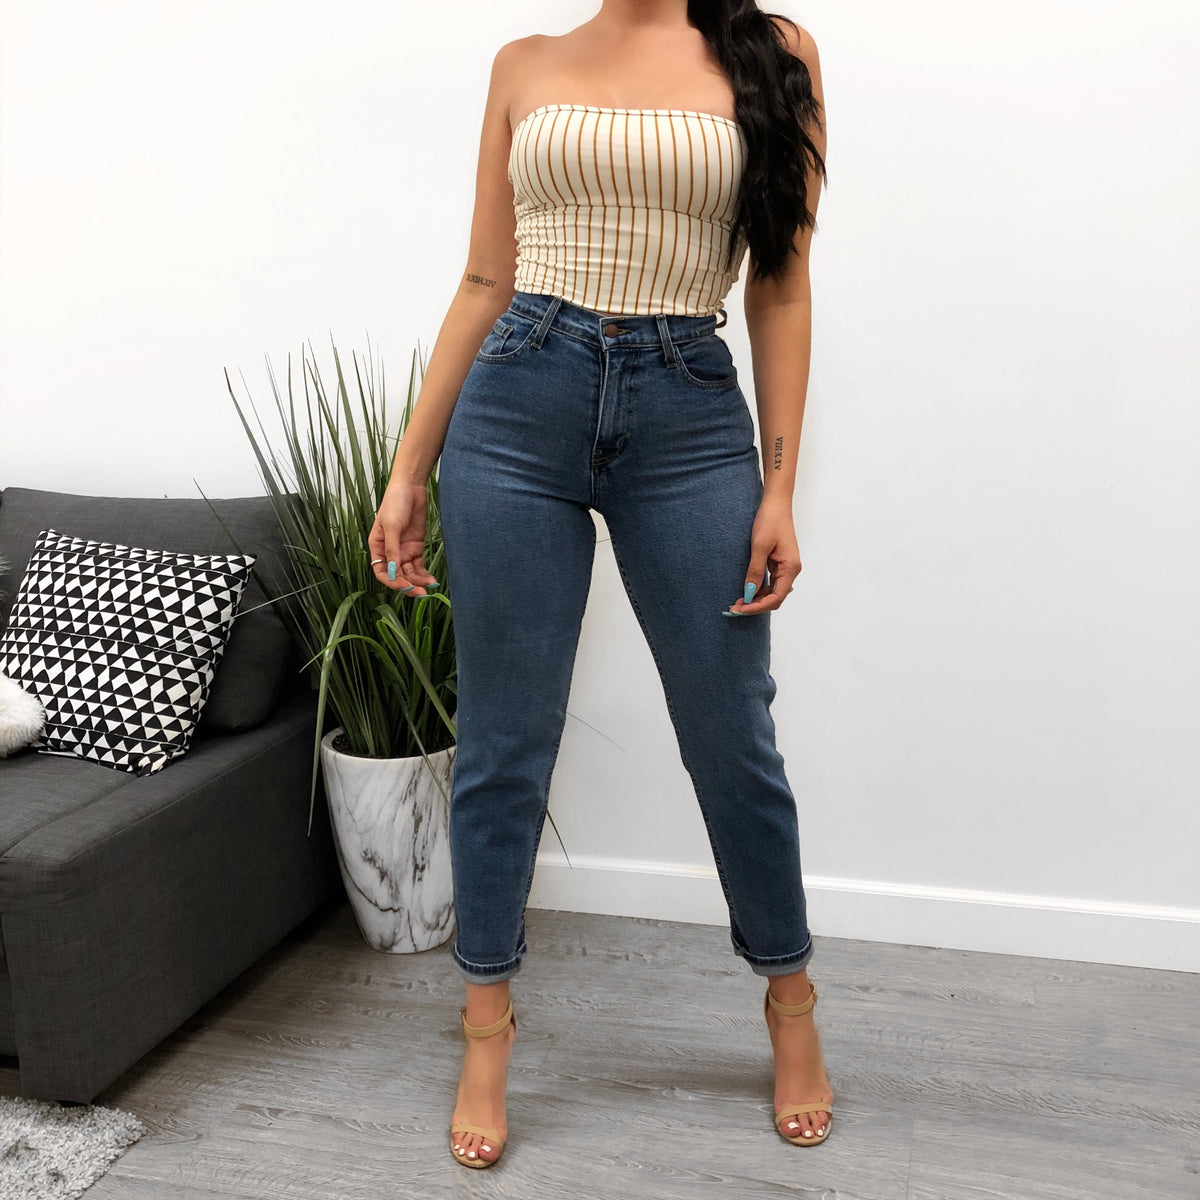 light denim high waist jeans with zipper, mom jean fit, two back pockets and two front pockets, adjustable folds at the bottom.